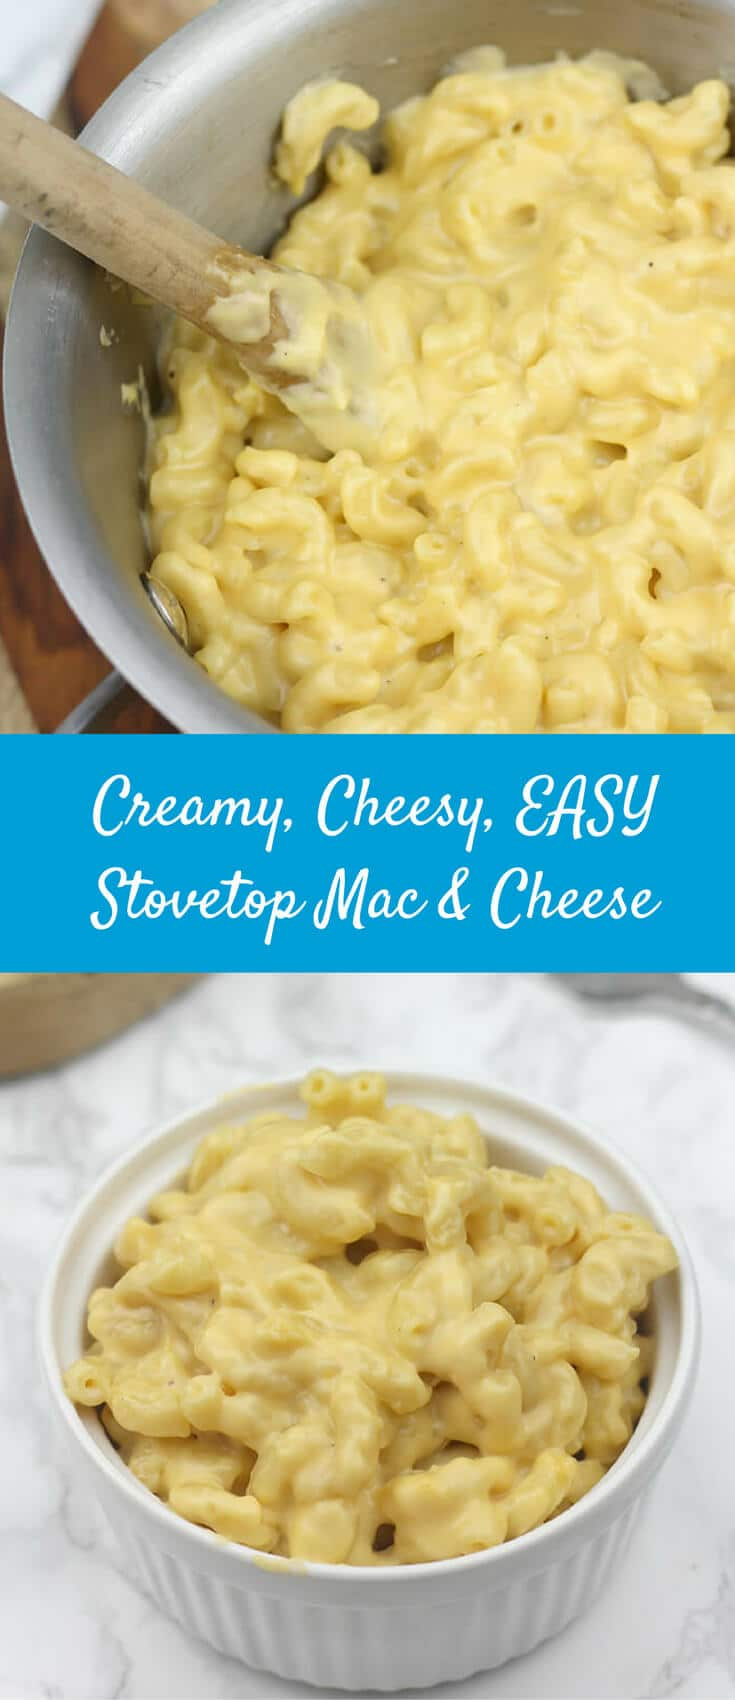 One-Pot Stovetop Mac and Cheese—The water and milk that cooks the noodles also makes the sauce for the creamiest, cheesiest, EASIEST mac and cheese ever!